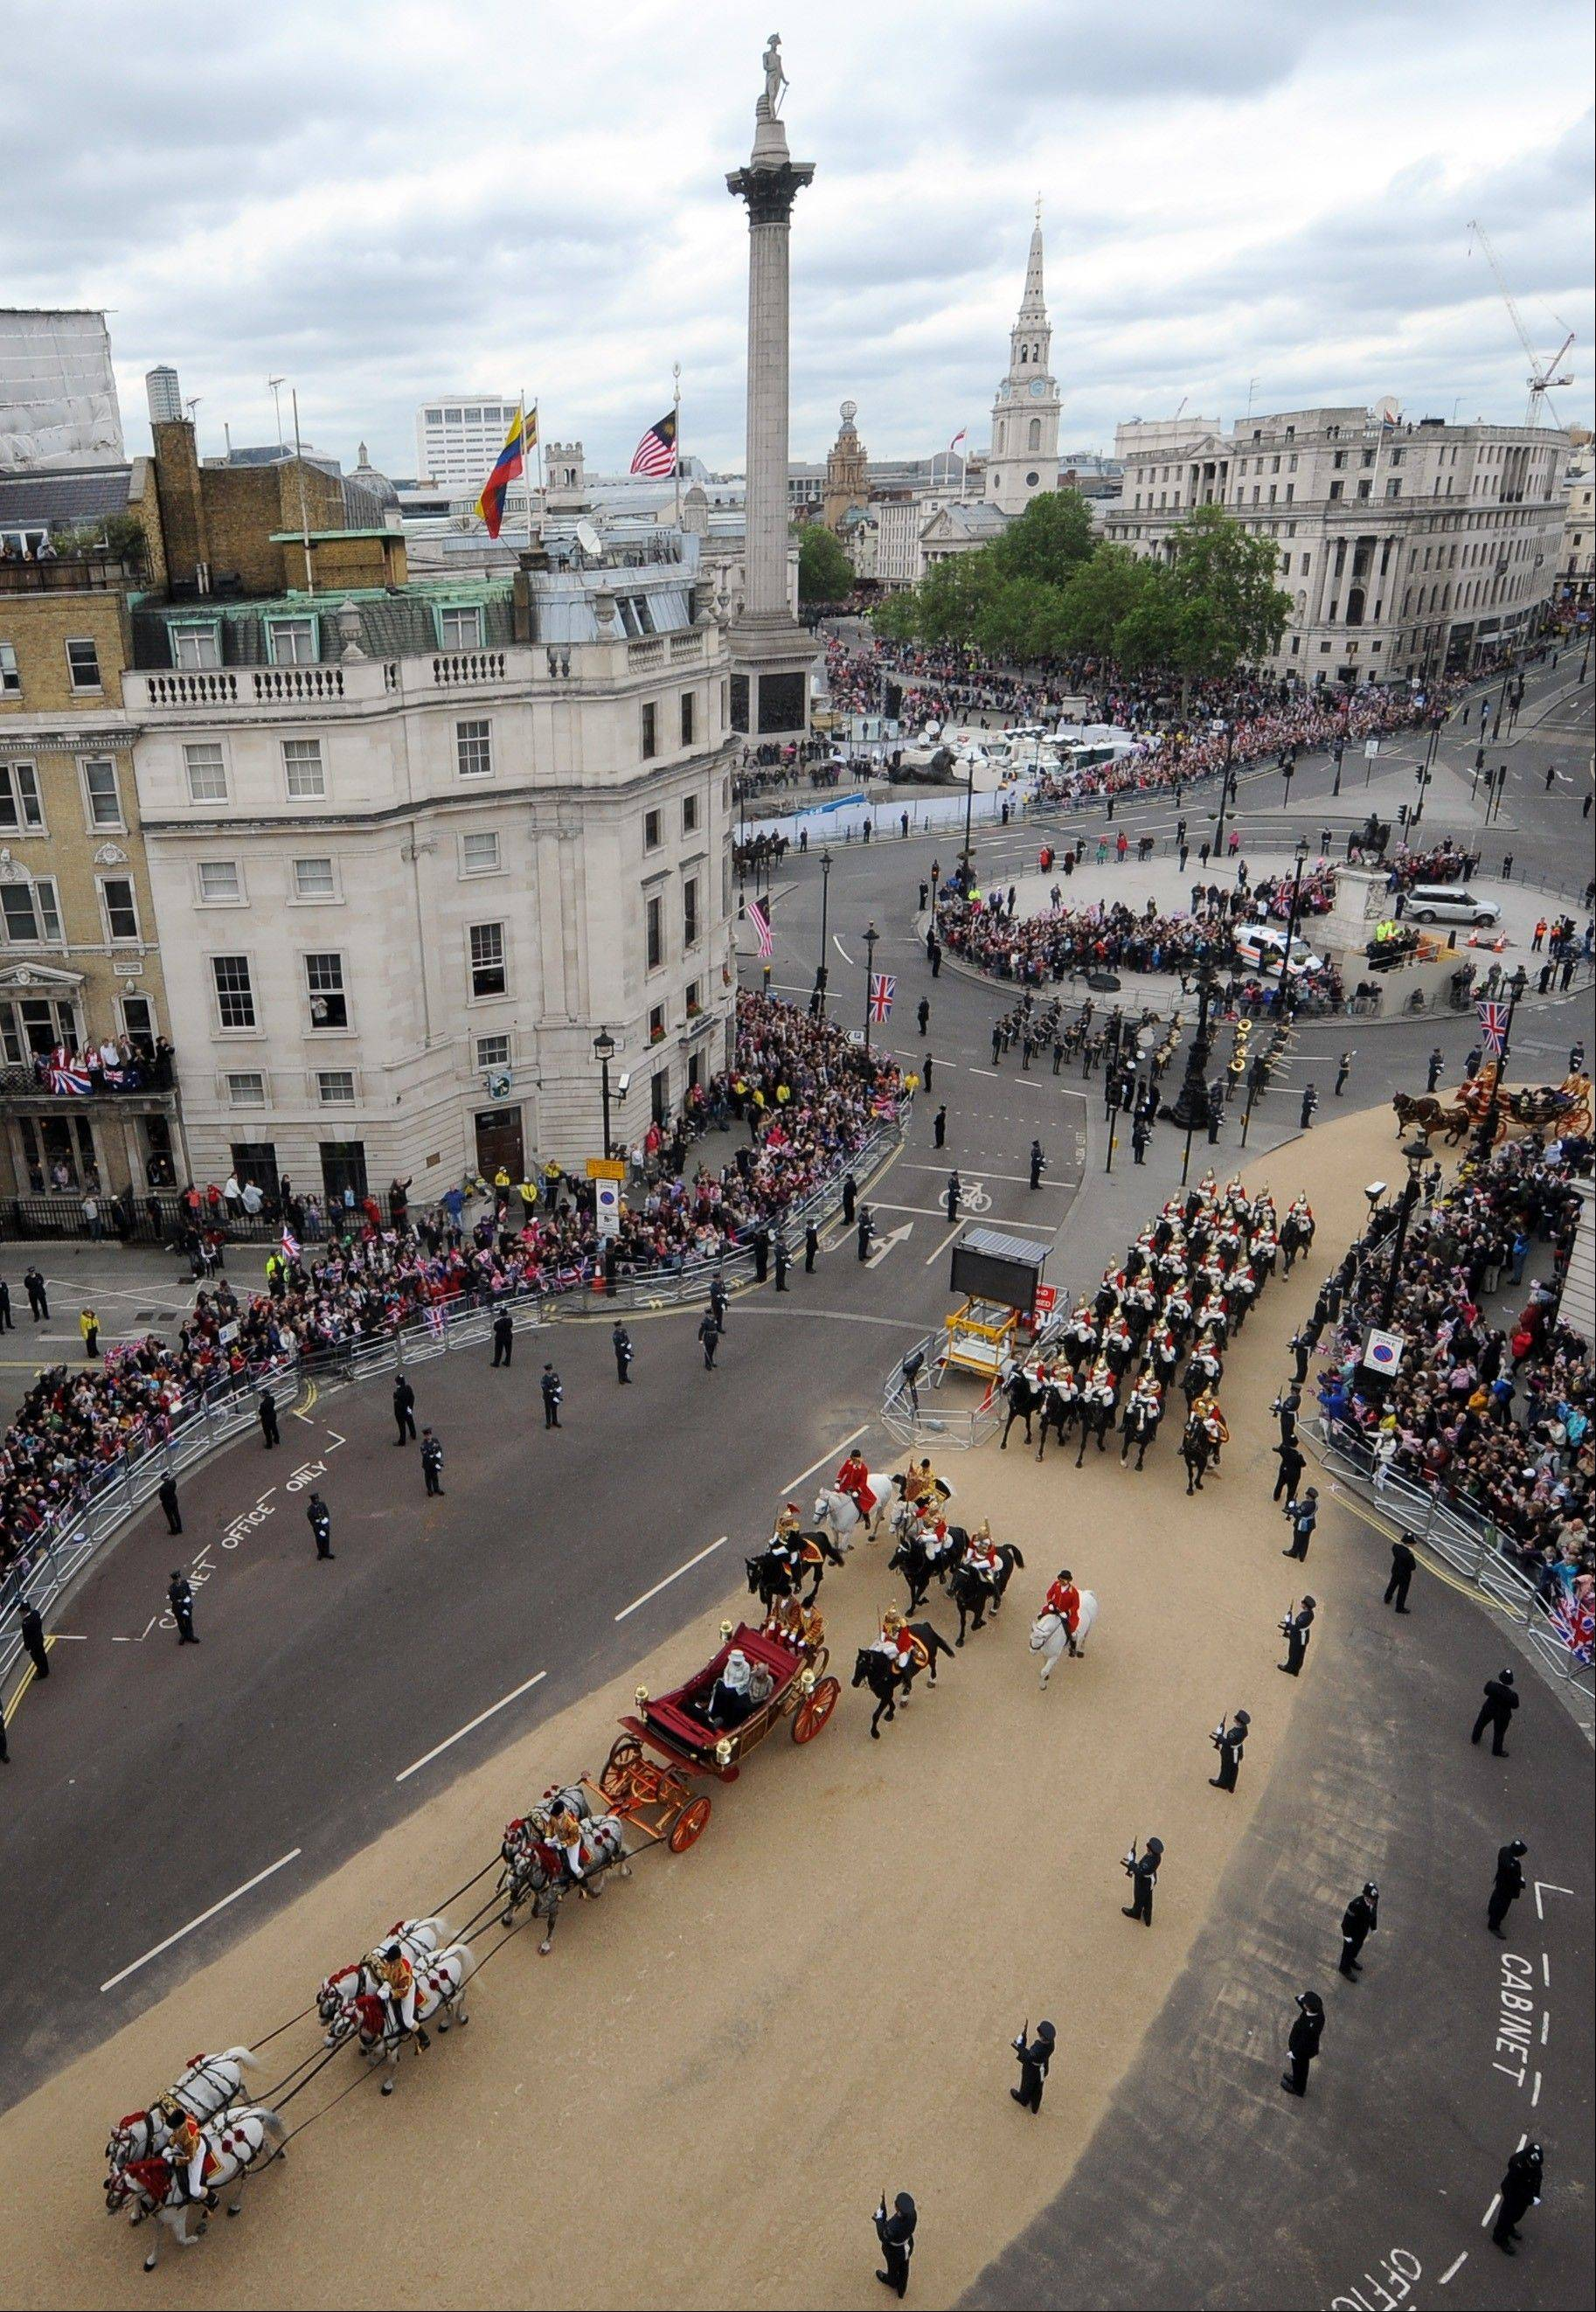 Britain's Queen Elizabeth II, Prince Charles and Camilla Duchess of Cornwall, travel in a carriage through Trafalgar Square, London on route to Buckingham Palace during the Diamond Jubilee celebrations. Tuesday June 5, 2012. Nelson's Column is seen in the background.